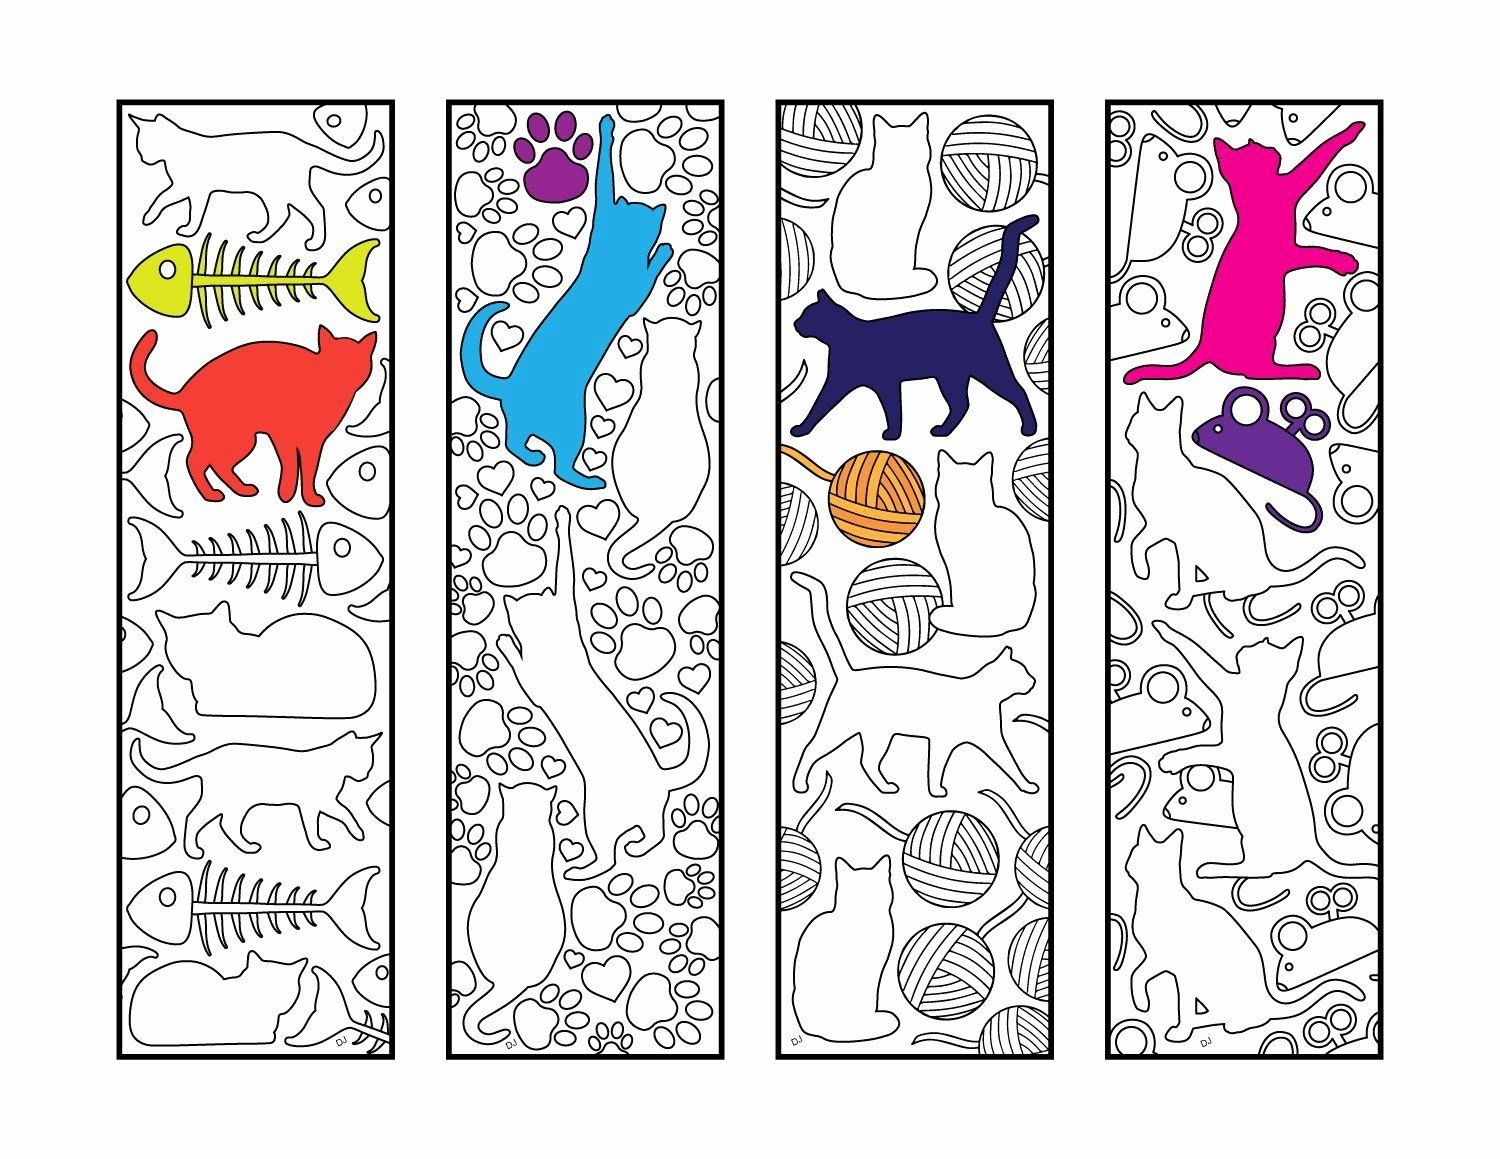 Bookmark Coloring Pages Printable Elegant Cute Animal Bookmarks Pdf Zentangle Coloring Page Artofi Coloring Bookmarks Printable Coloring Pages Coloring Pages